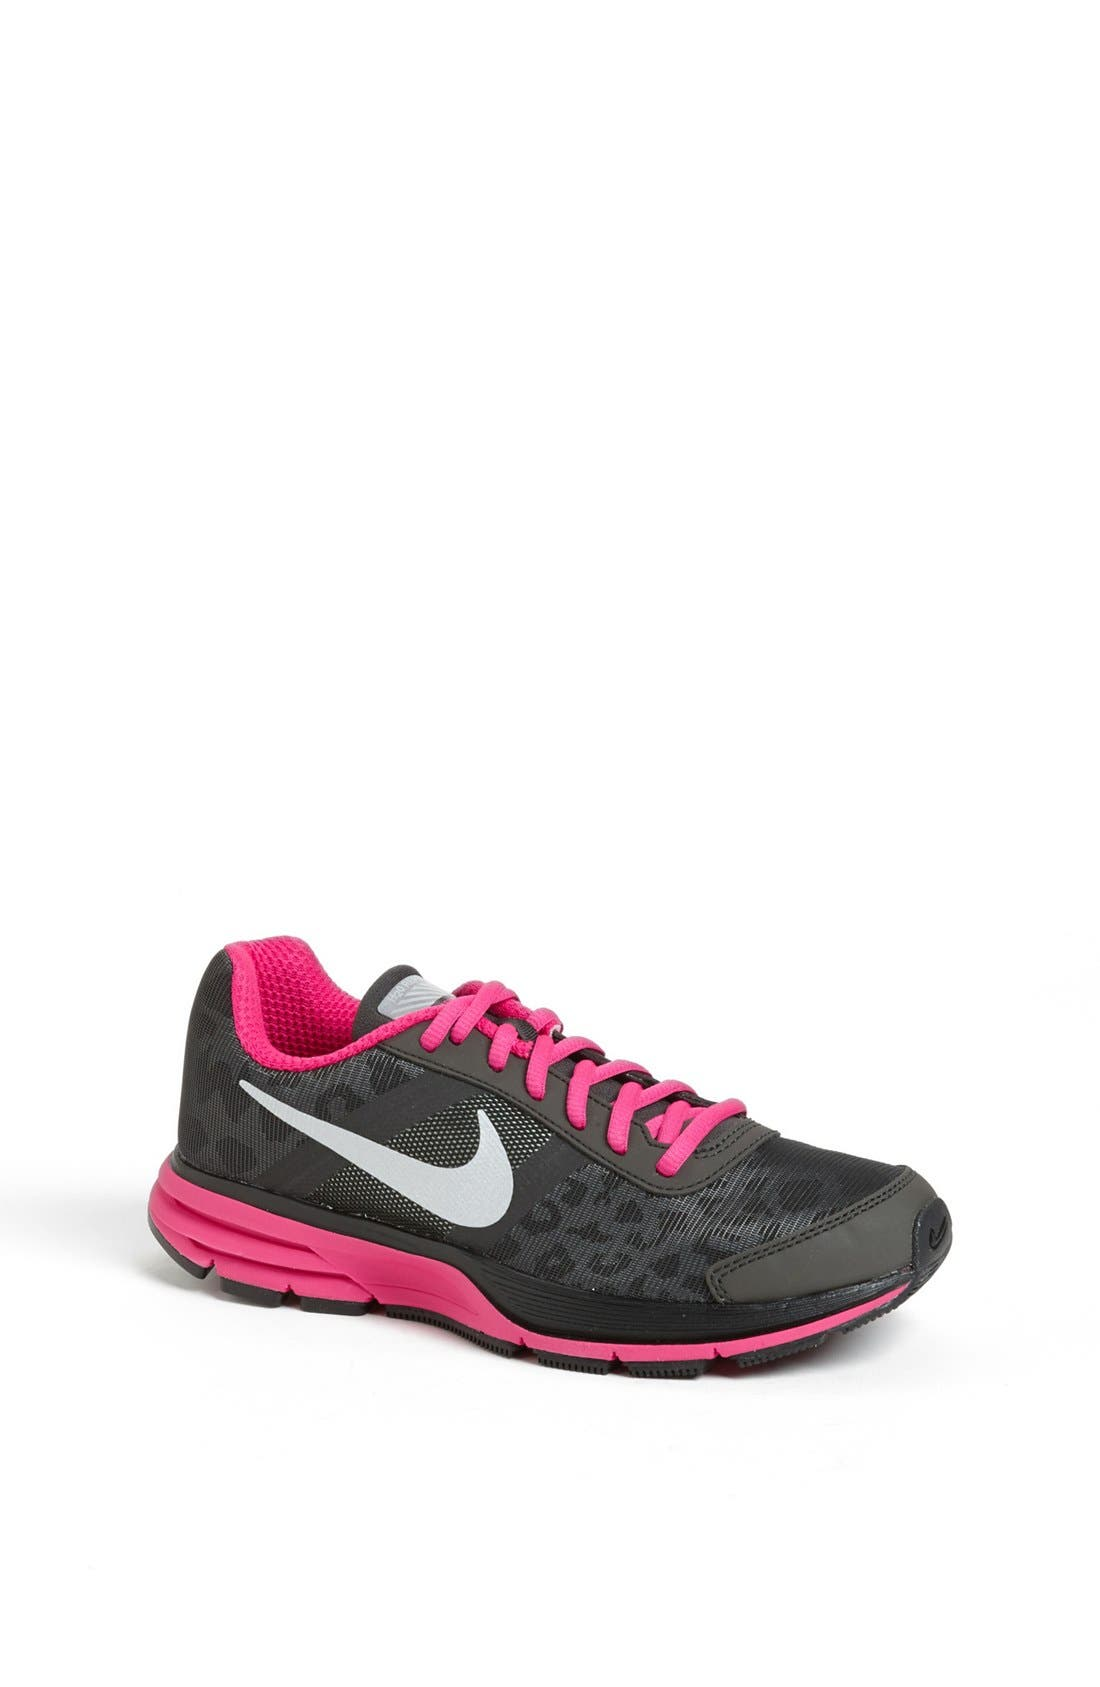 Main Image - Nike 'Air Pegasus+ 30 Shield' Running Shoe (Little Kid & Big Kid)